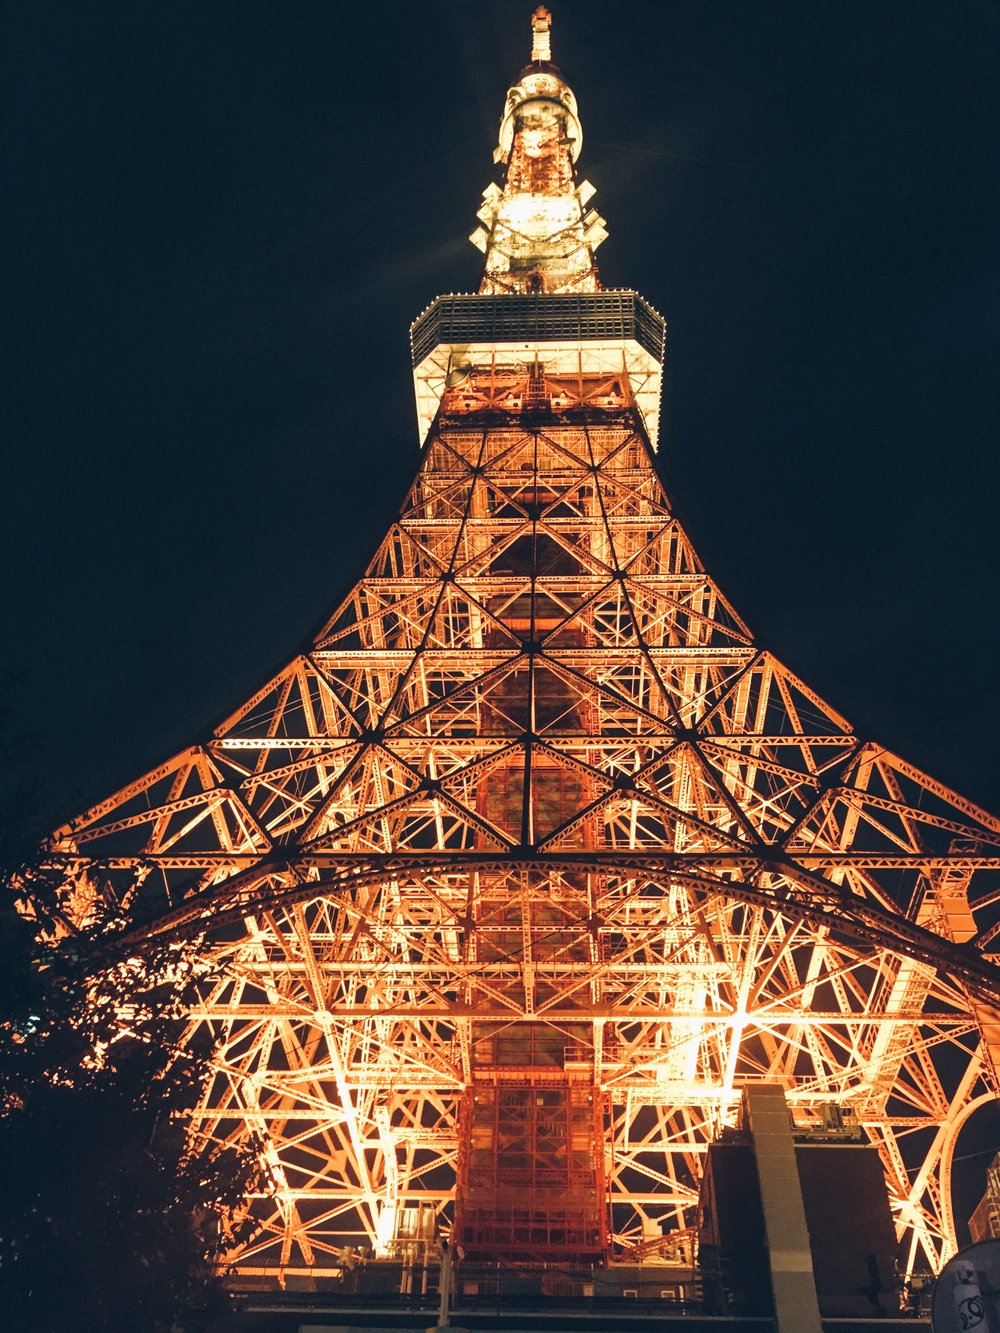 Tokyo Tower - Fashion & Lifestyle Spots in Tokyo, Japan - DROP